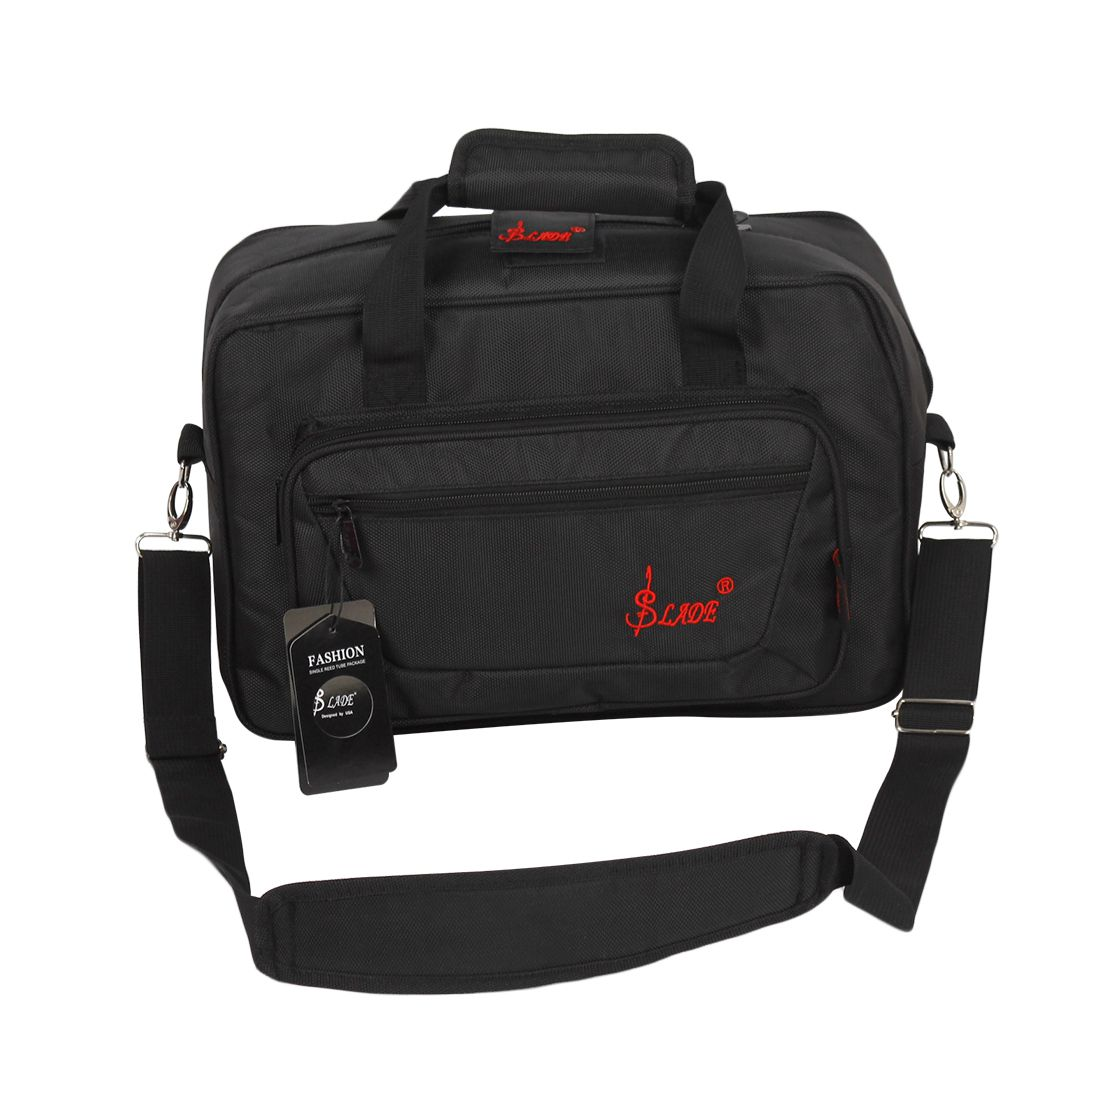 Systematic Slade Oboe Clarinet Soft Carrying Case Gig Bag Padding With Shoulder Strap High Quality And Inexpensive